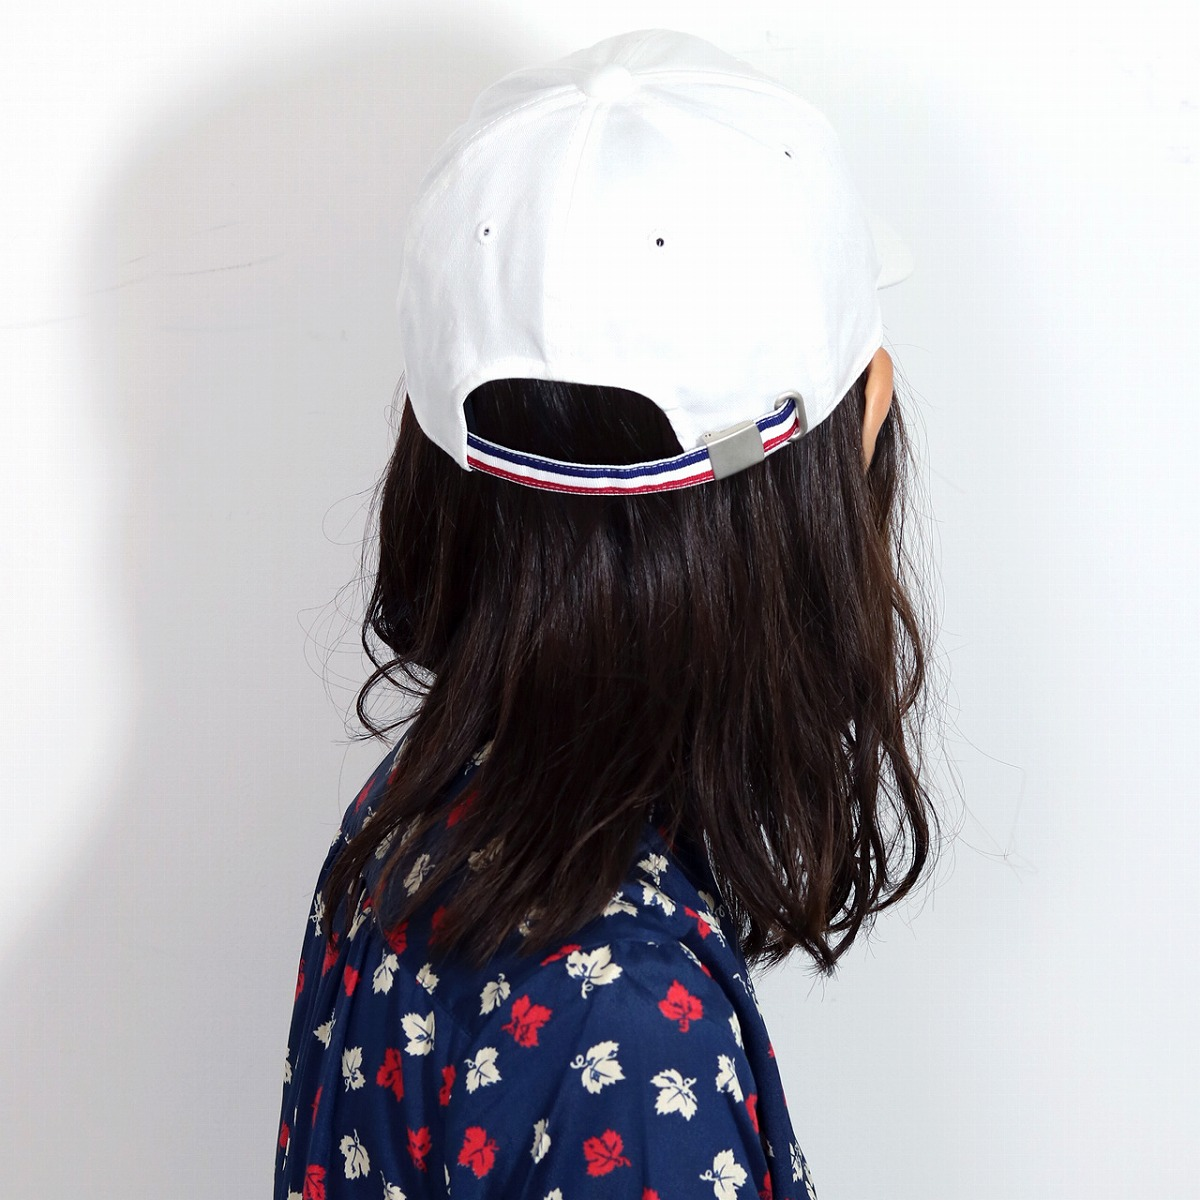 be85e87668cde Mark brand American   white white (Christmas gift packing lapping free of  charge) of the Bupleurum Root bunny cap men cotton 100% Psycho Bunny hat cap  ...